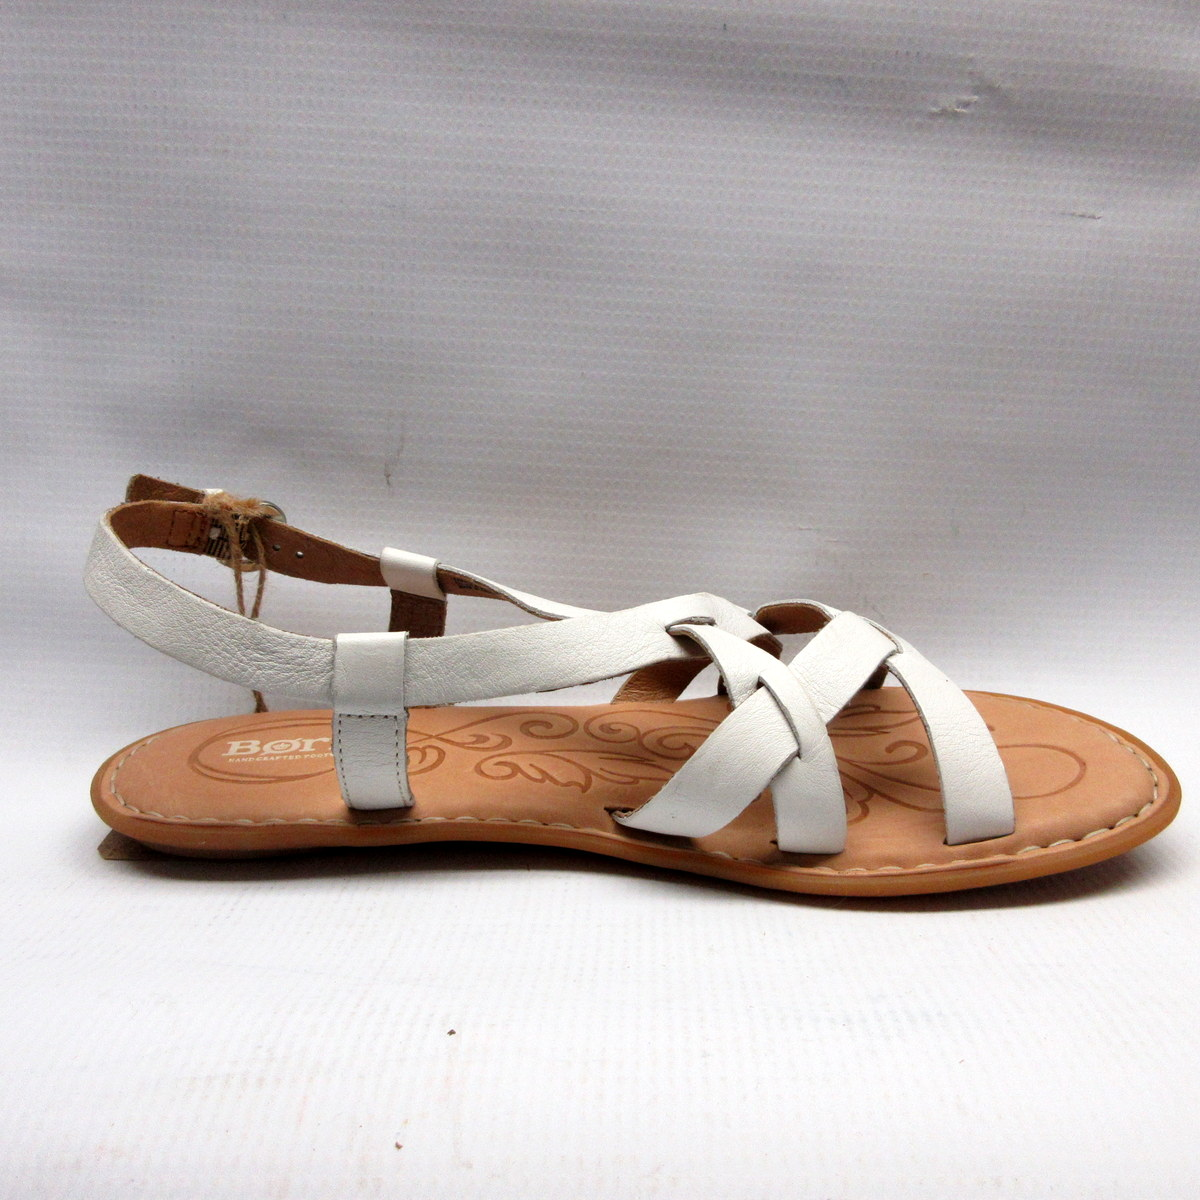 8c90dbaf7 Born Sandals Women Eryka In White Cabaline